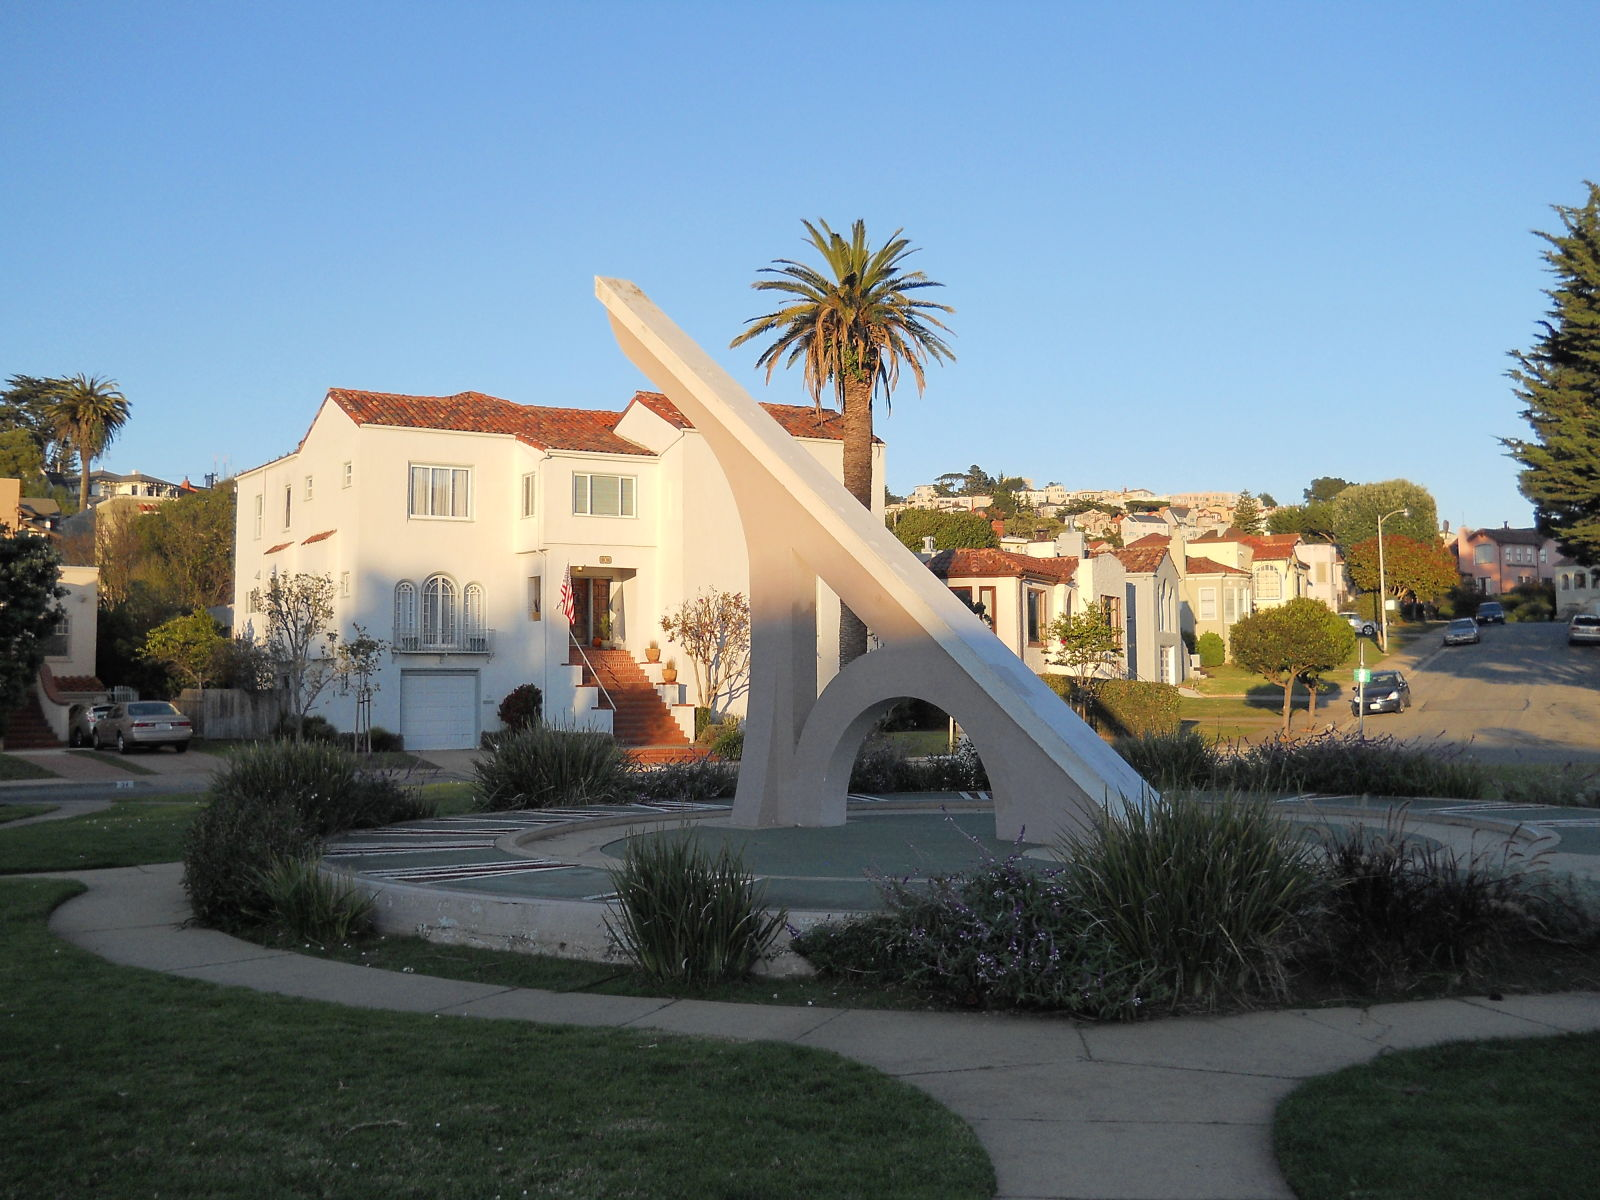 The sundial at Ingleside Terraces was built in 1913 to lure prospective buyers to newly built homes in the neighborhood.